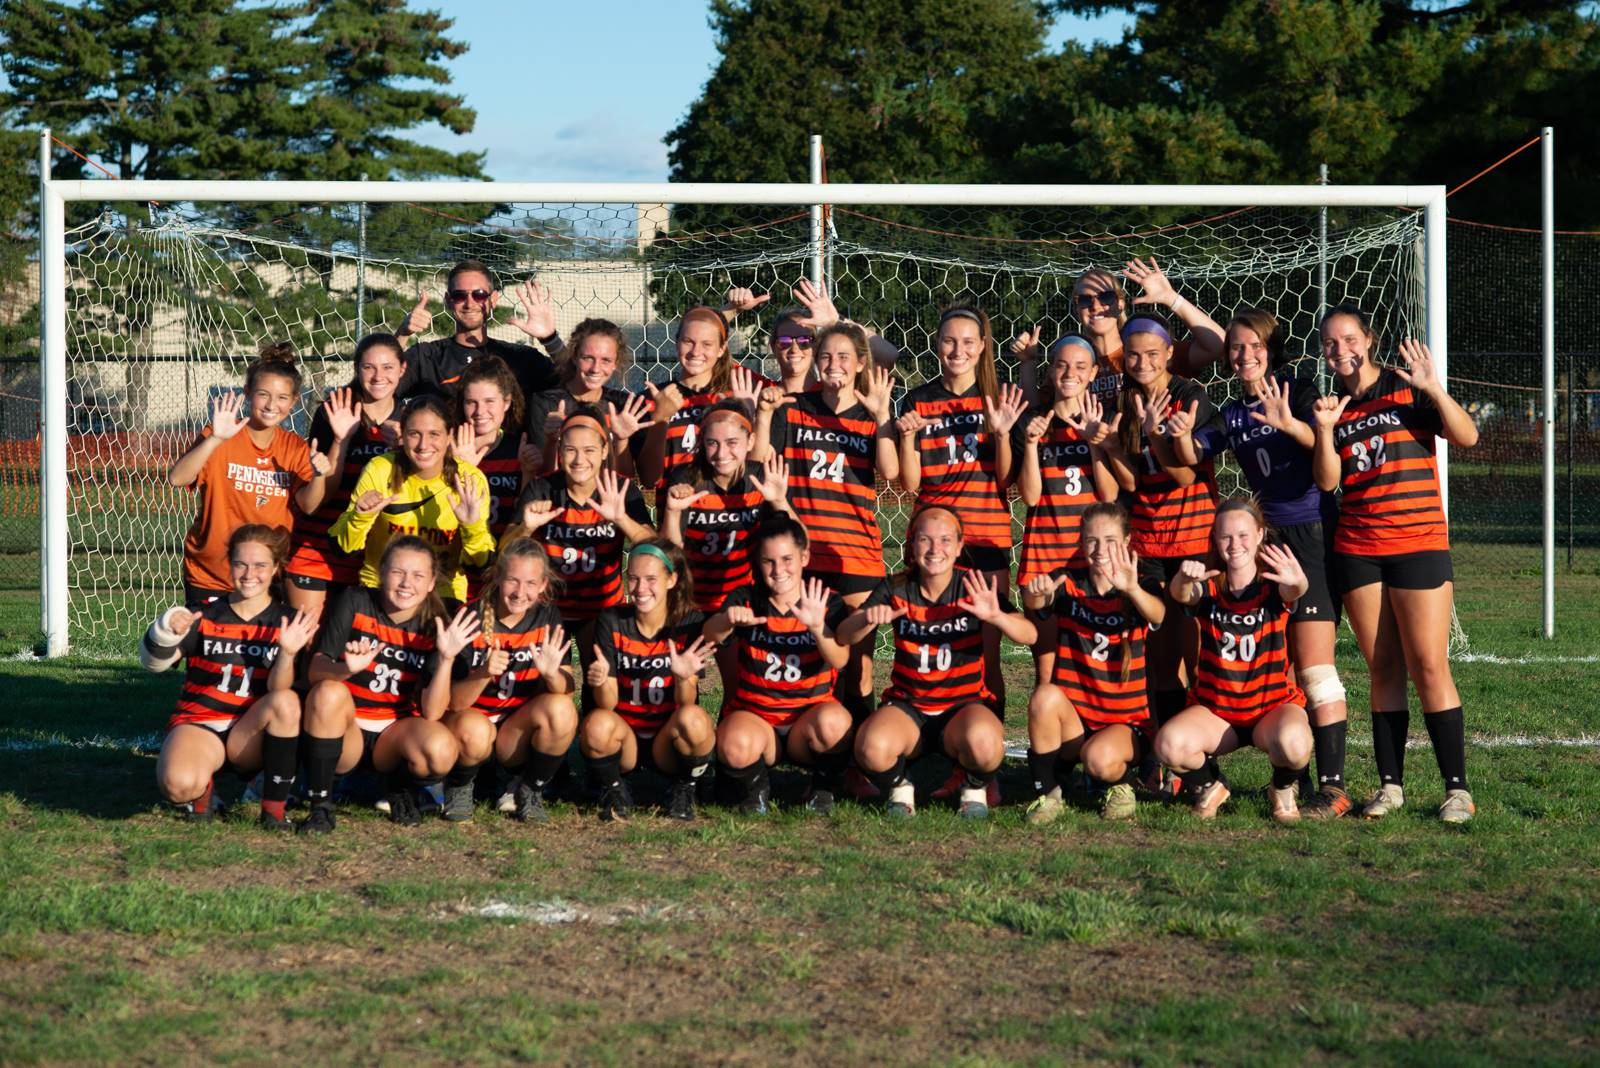 Girls soccer won their 6th consecutive Suburban One League title, finishing the season with an 11-1